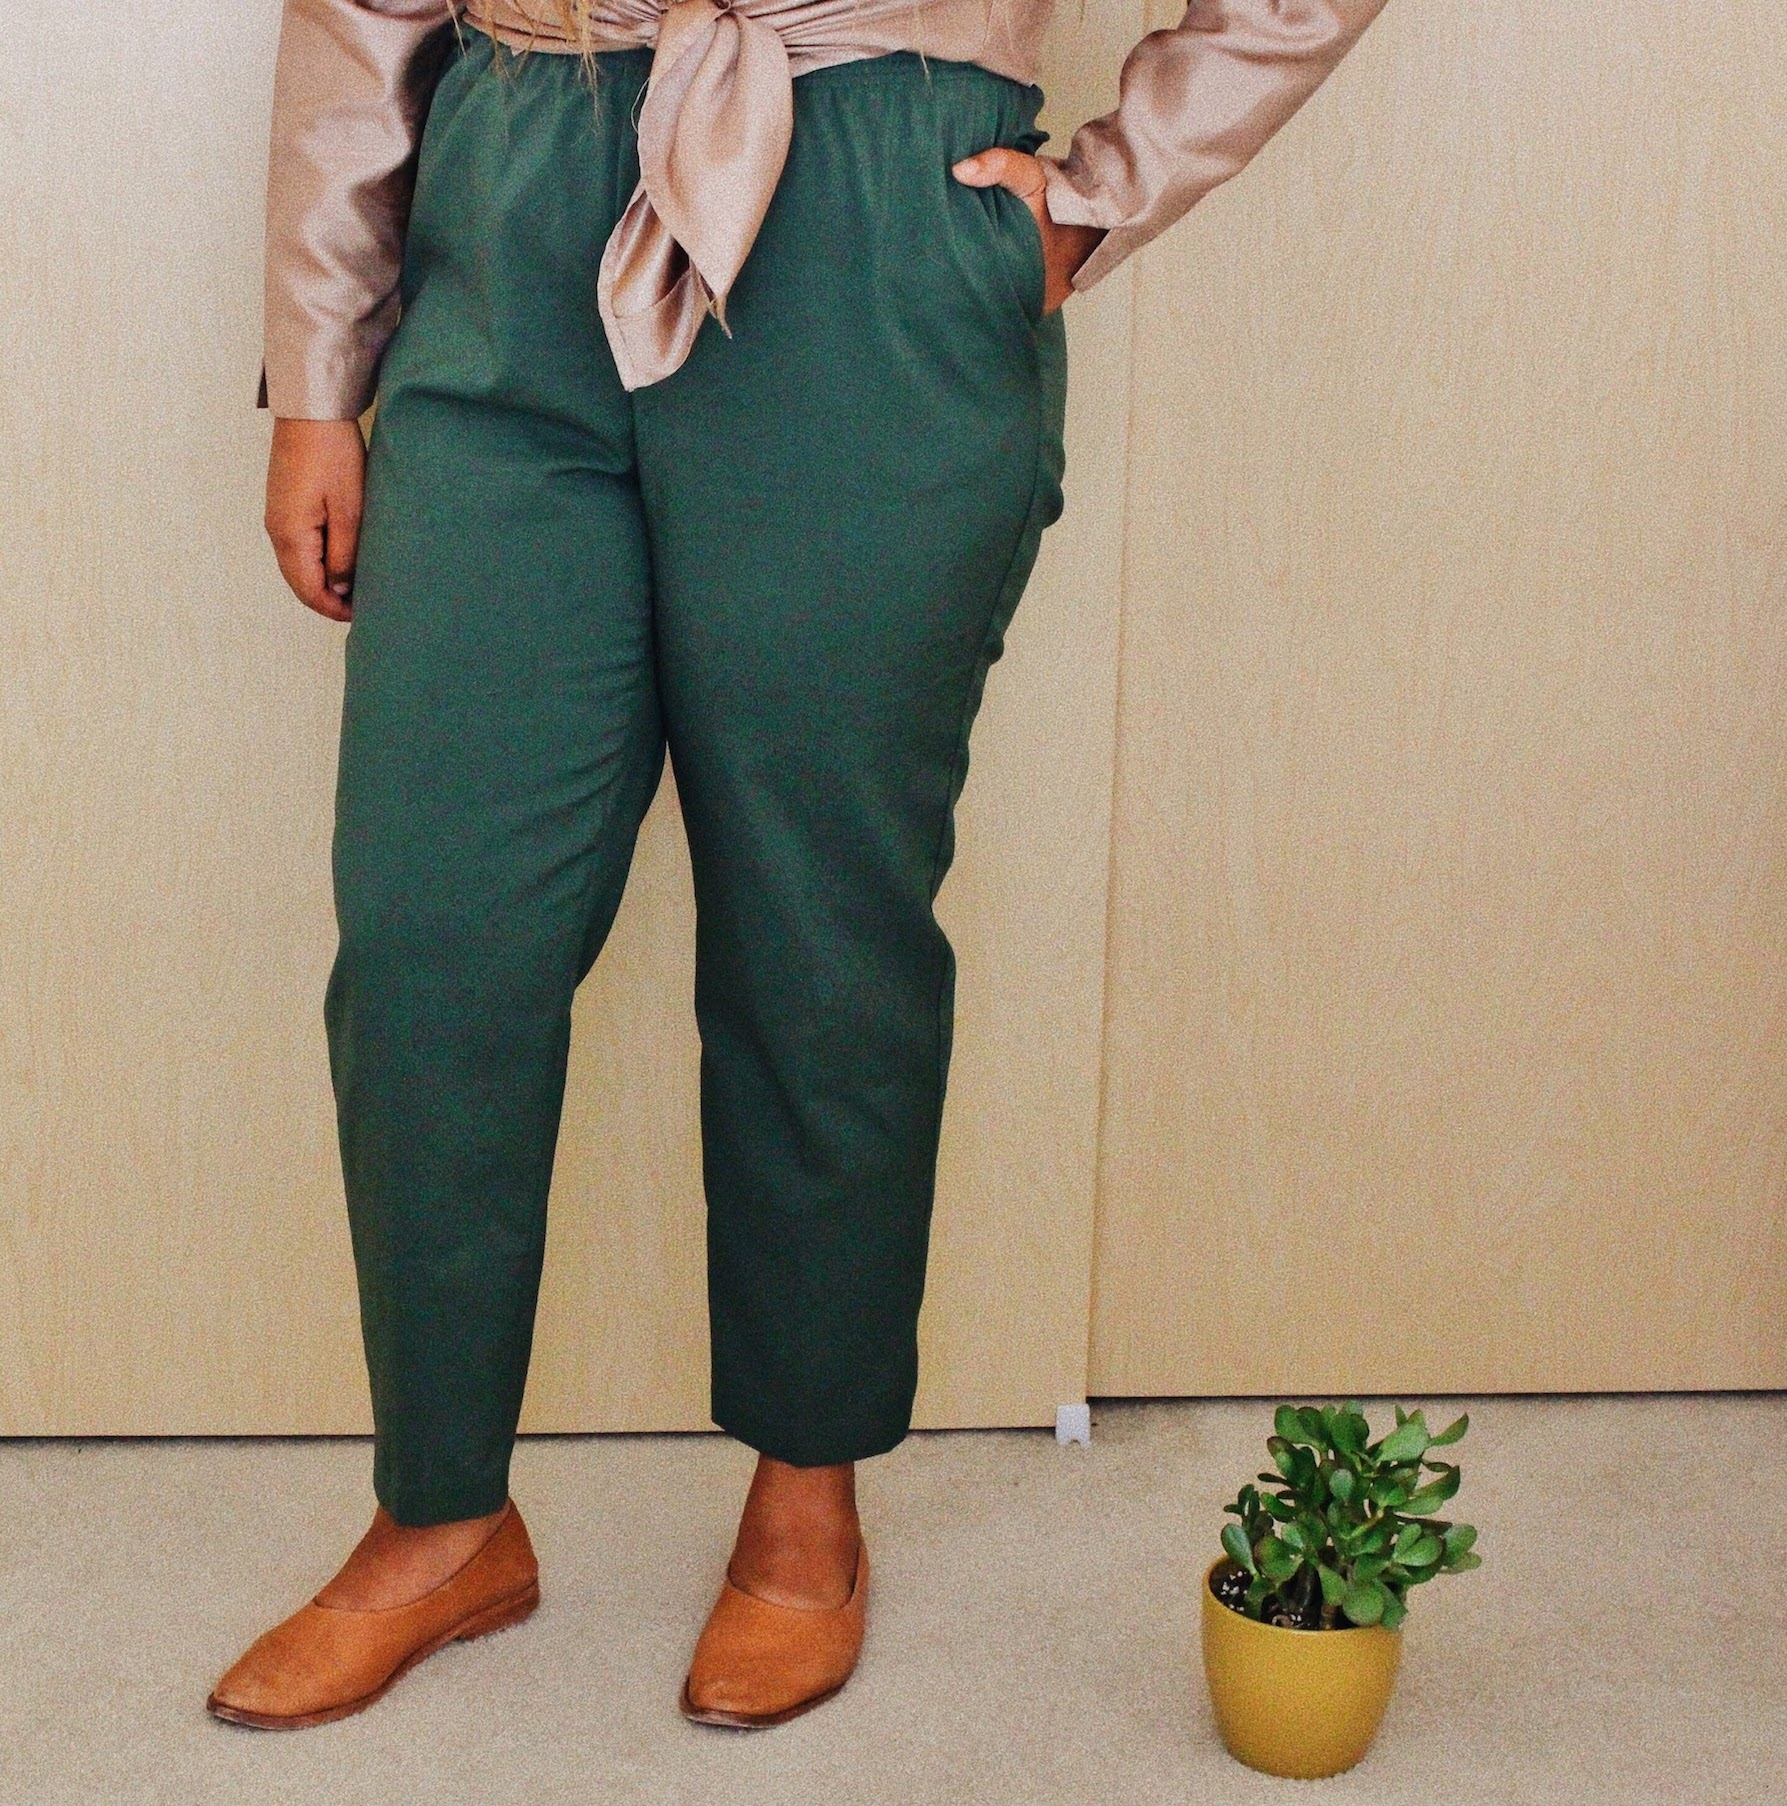 Green thrifted pants for a colorful minimalist outfit // A Week Of Boho Minimalist Outfits With Deborah Shepherd From Clothed In Abundance on The Good Trade